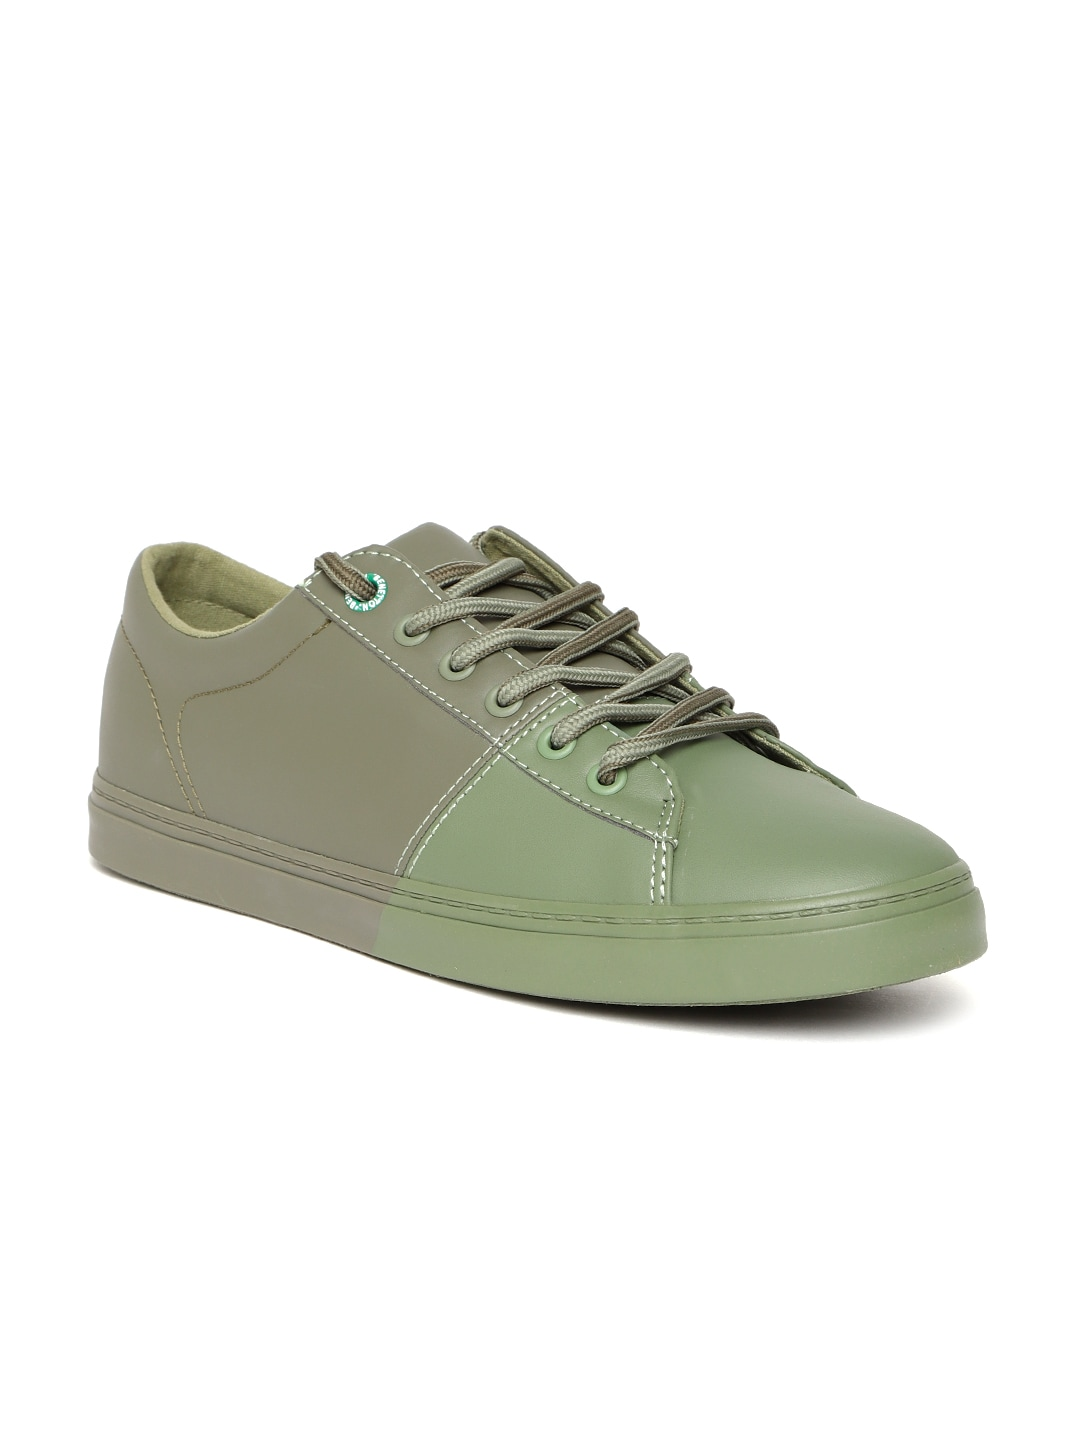 a244863263d6 Olive Green Casual Shoes - Buy Olive Green Casual Shoes online in India